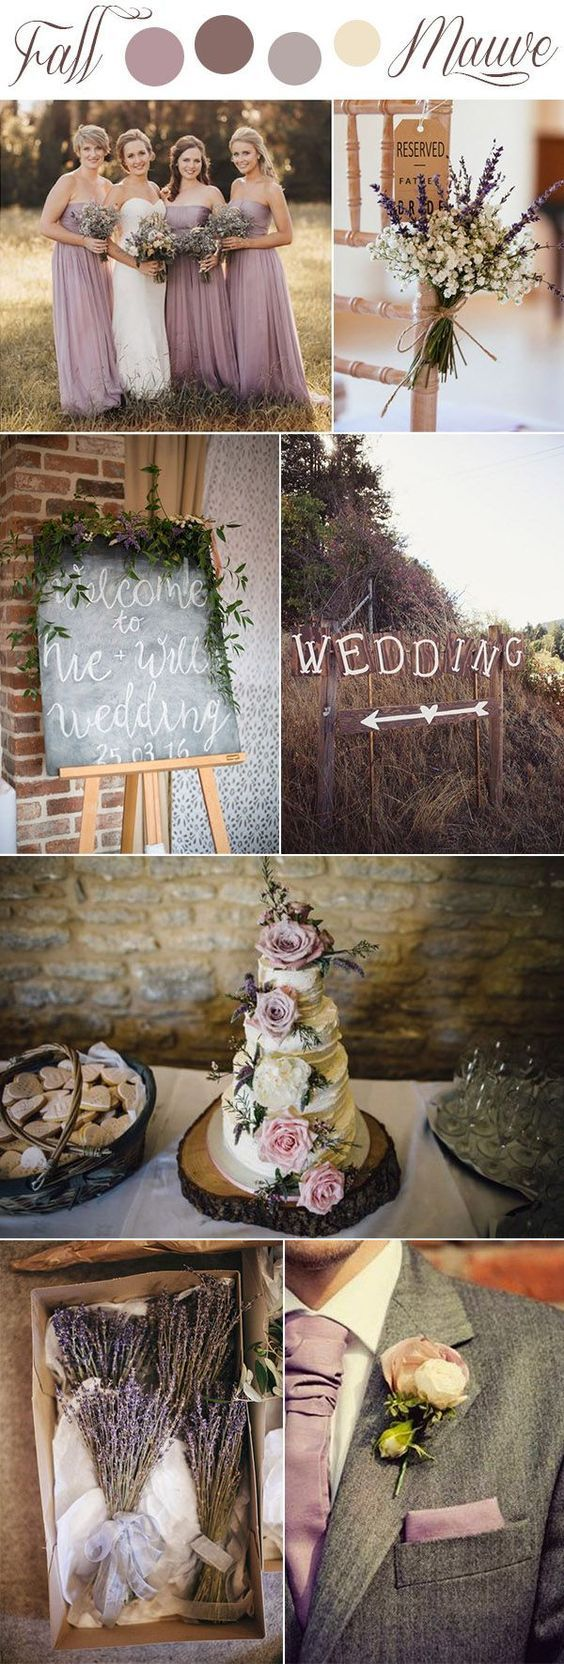 fall mauve and lavender romantic rustic wedding colors#weddingcolors#mauve #romanticweddings